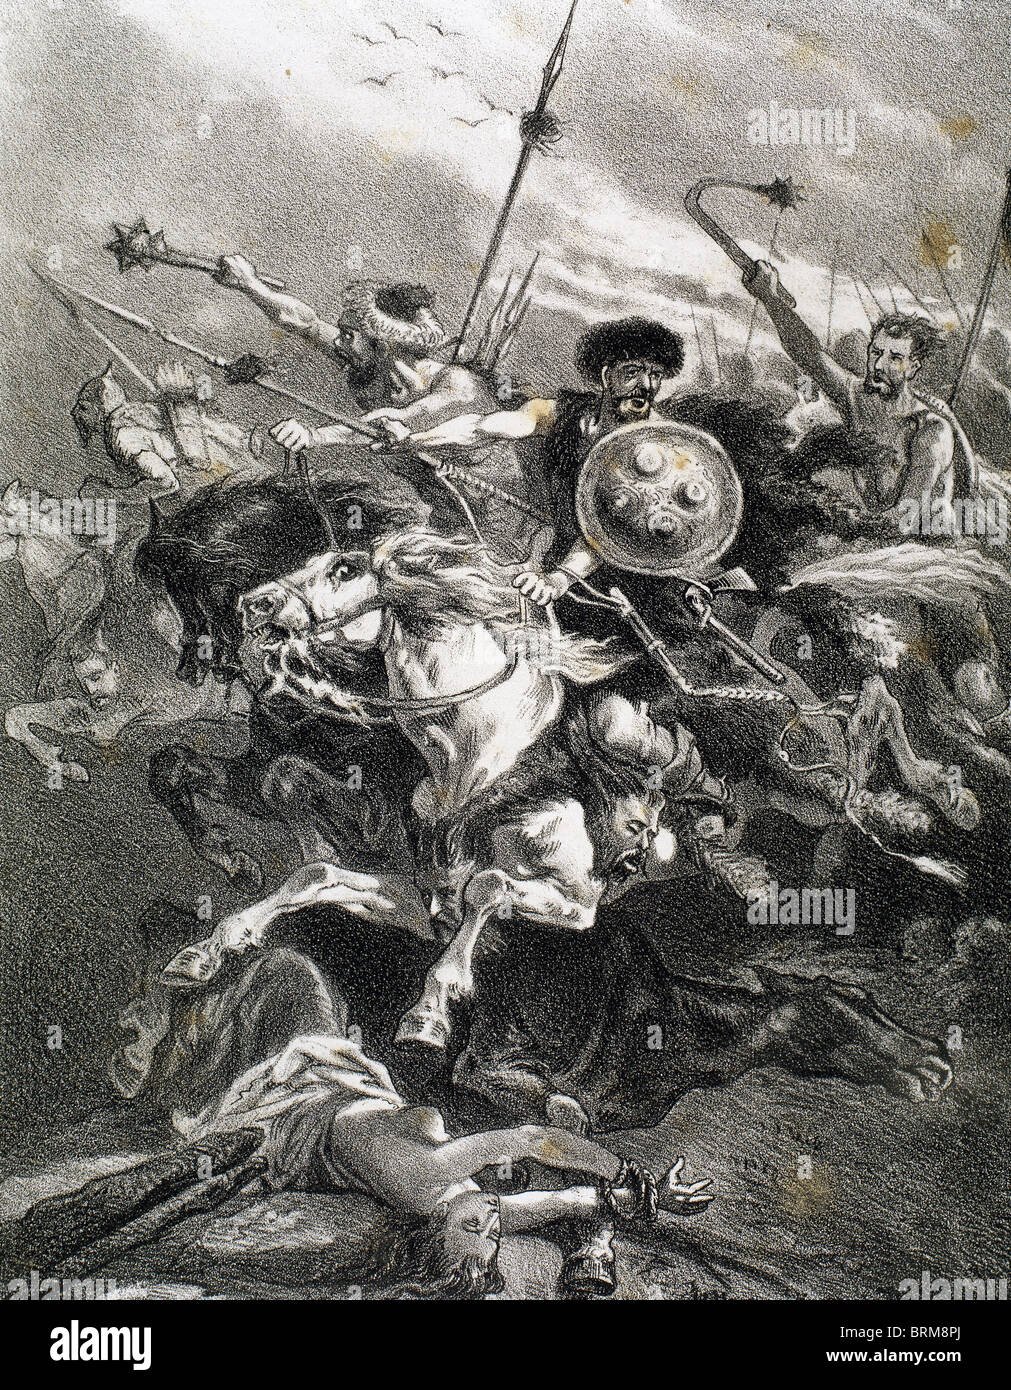 Invasion of the Iberian Peninsula by the Visigoths. Sixth century. Engraving. - Stock Image